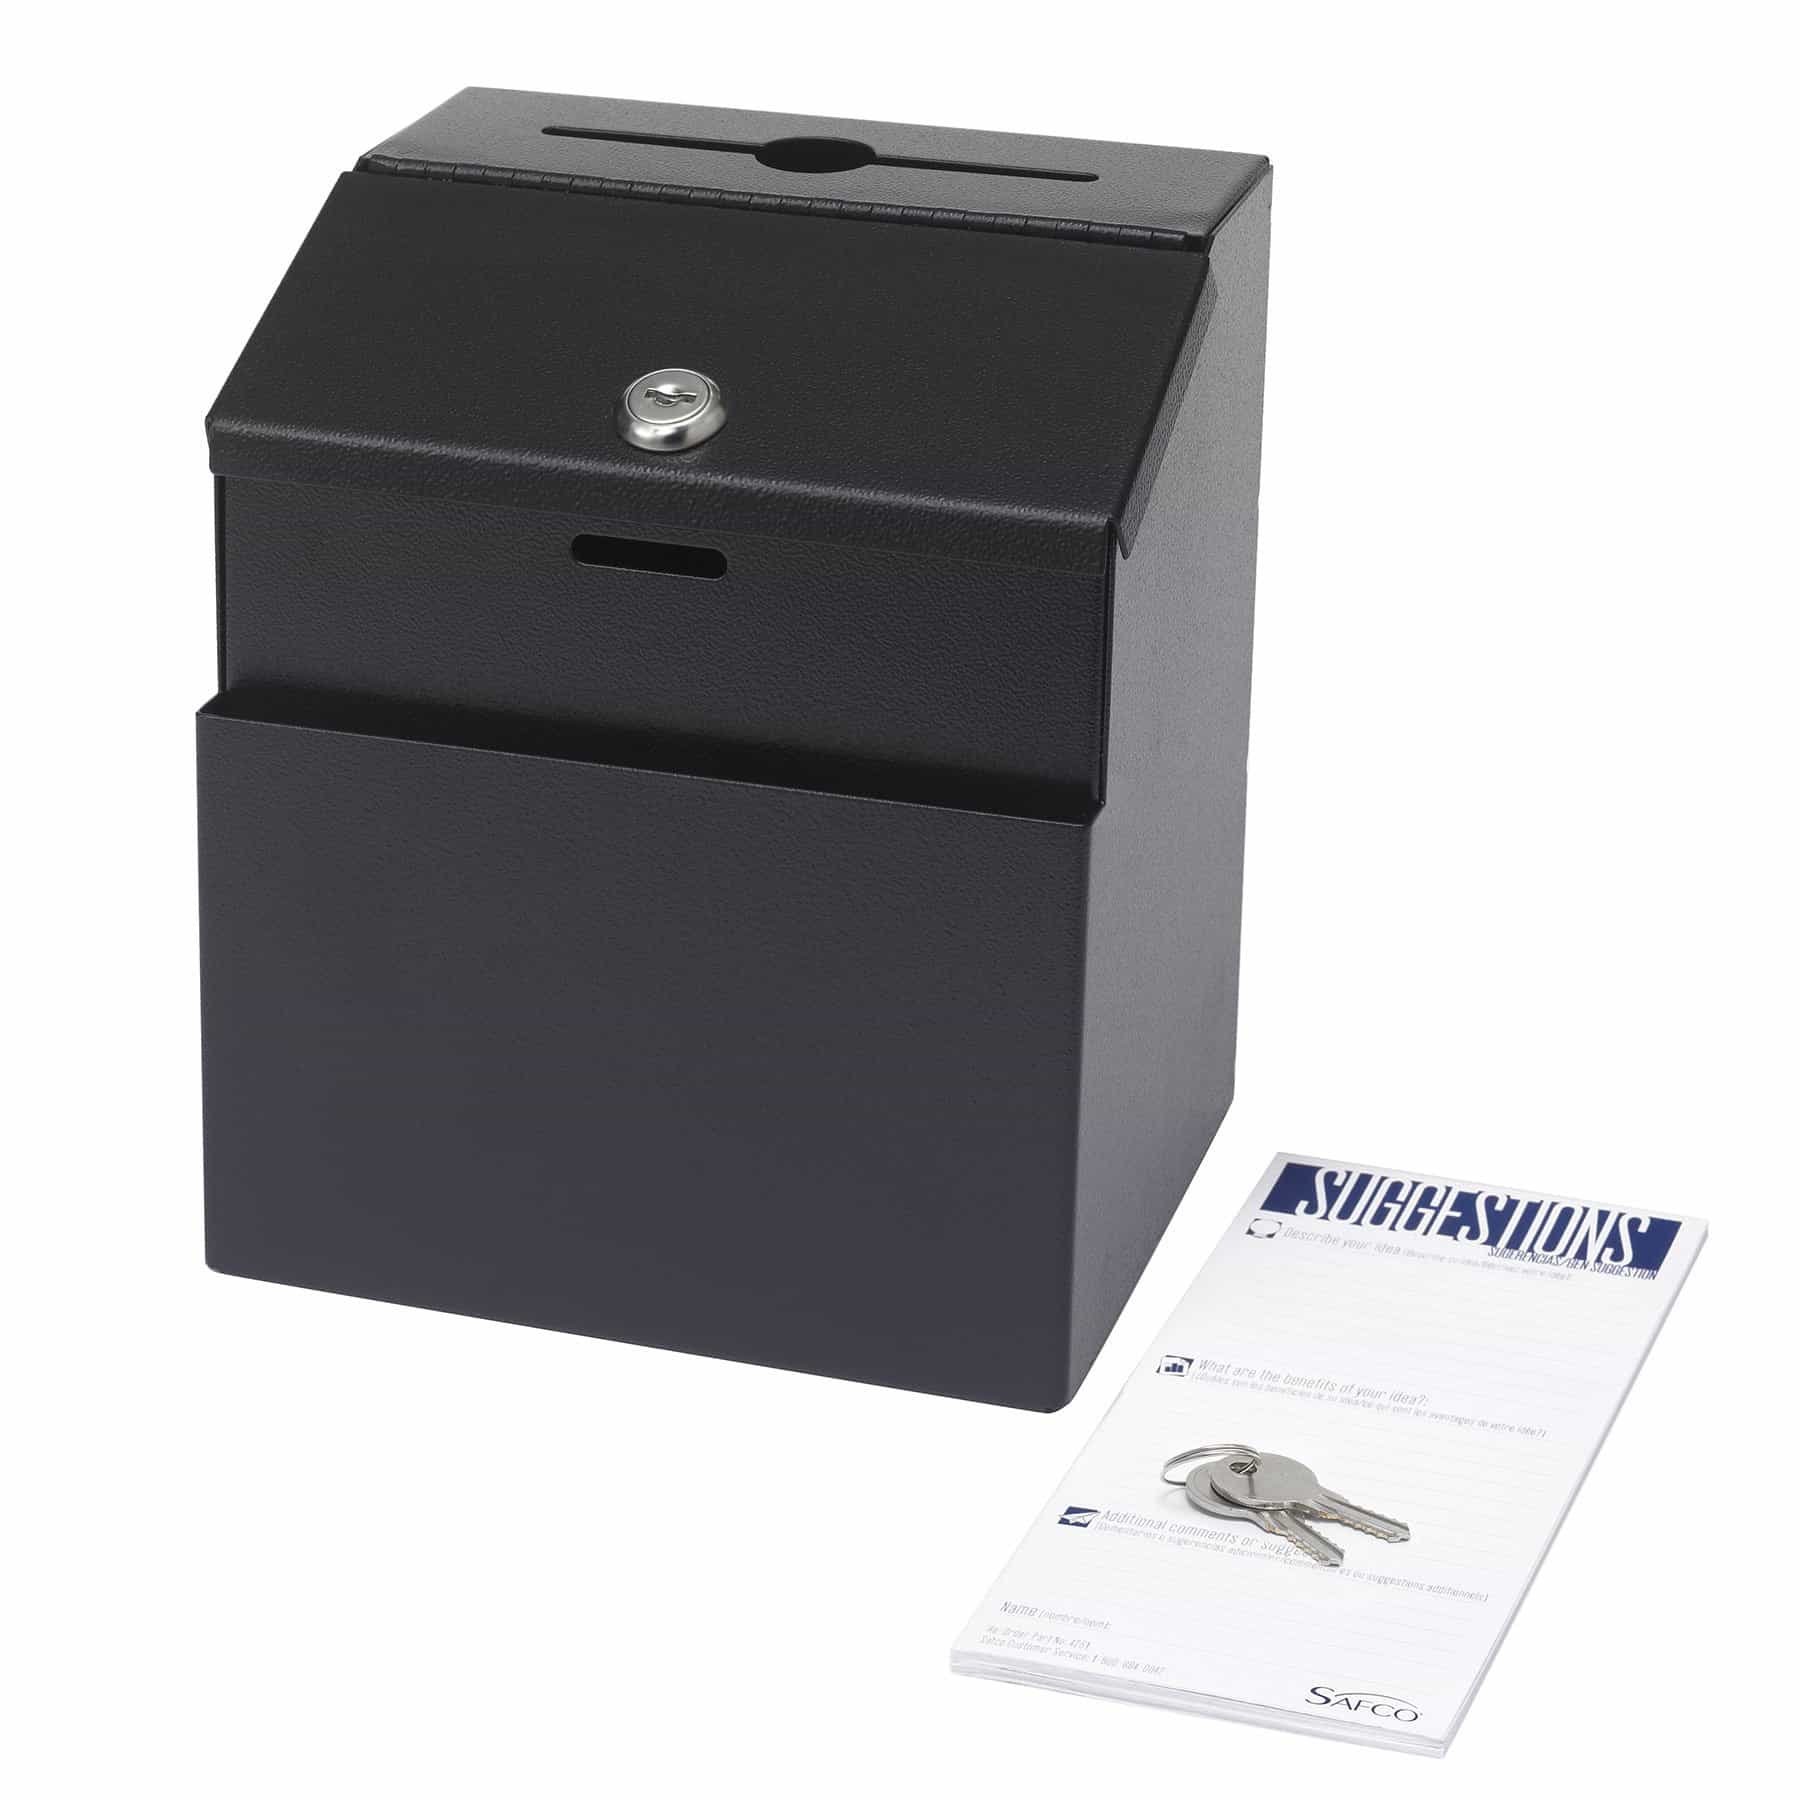 bedinhome - 4232BL durable black powder coat finish Steel Suggestion Drop Box includes two keys - Safco - Suggestion Box